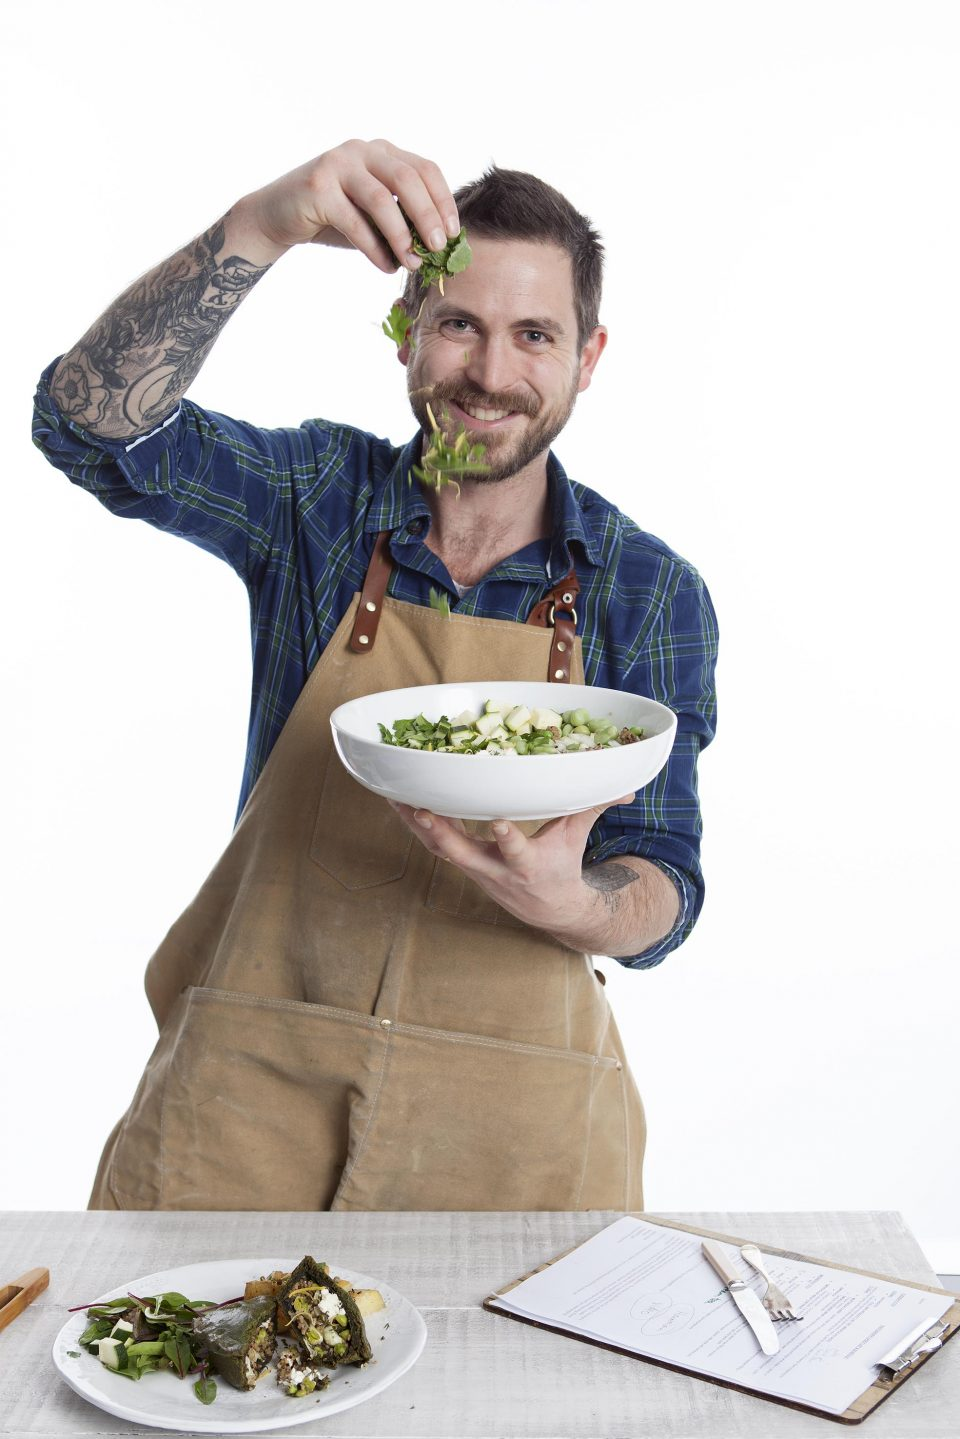 Food shoot at Princes House with James Strawbridge for The Bake Factory